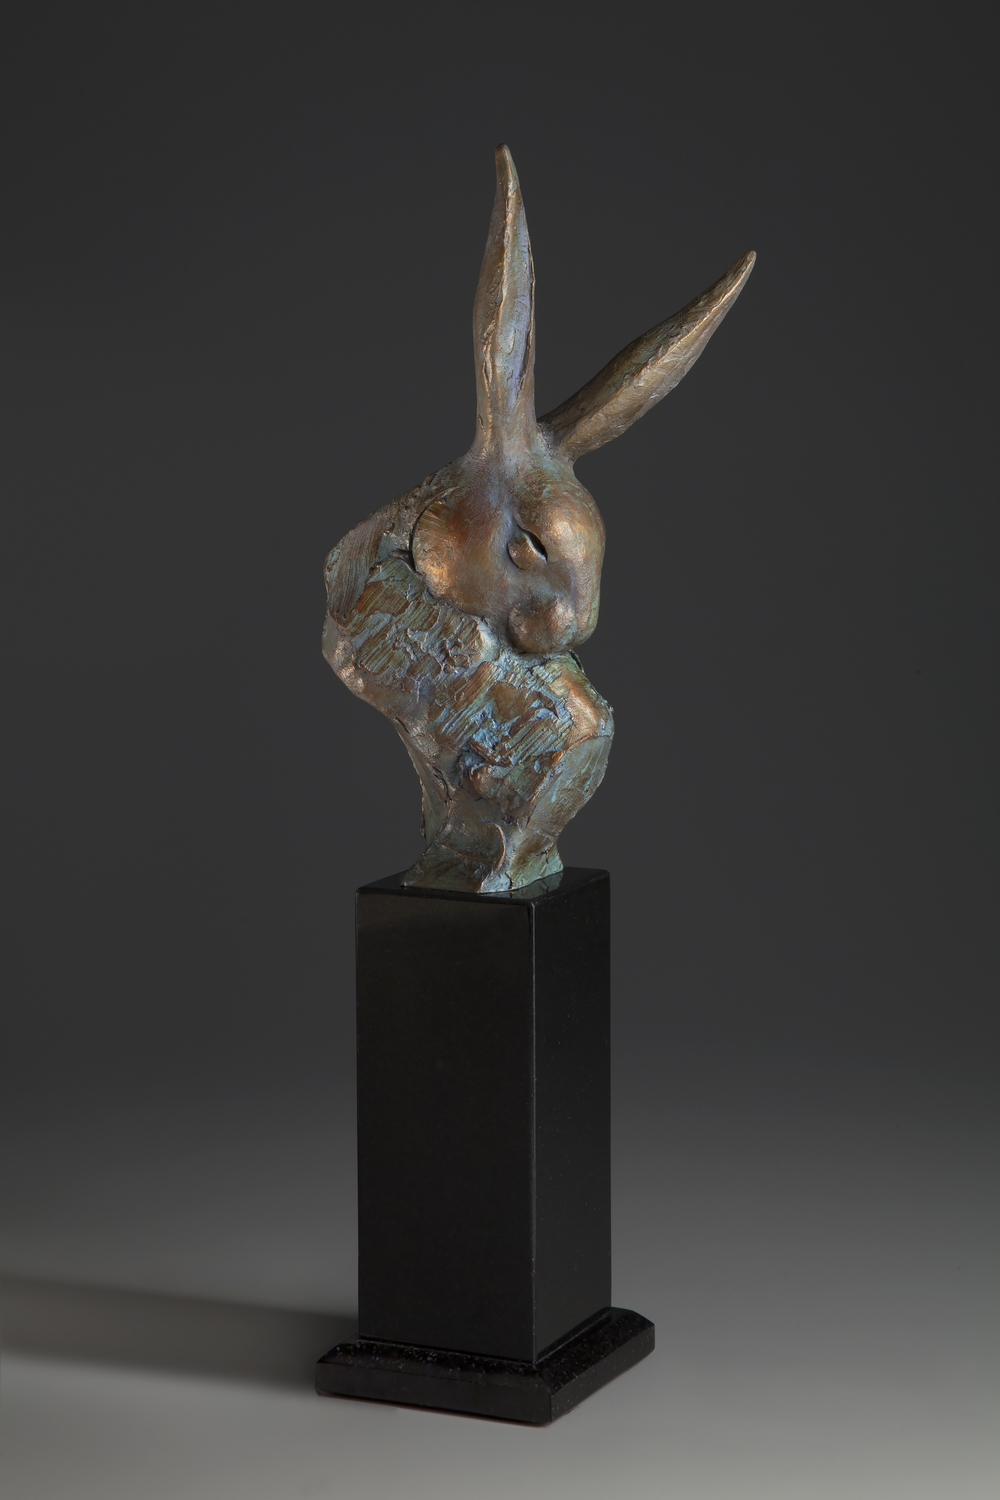 Rabbit Radar  - 19x8x5 inches - $2,400